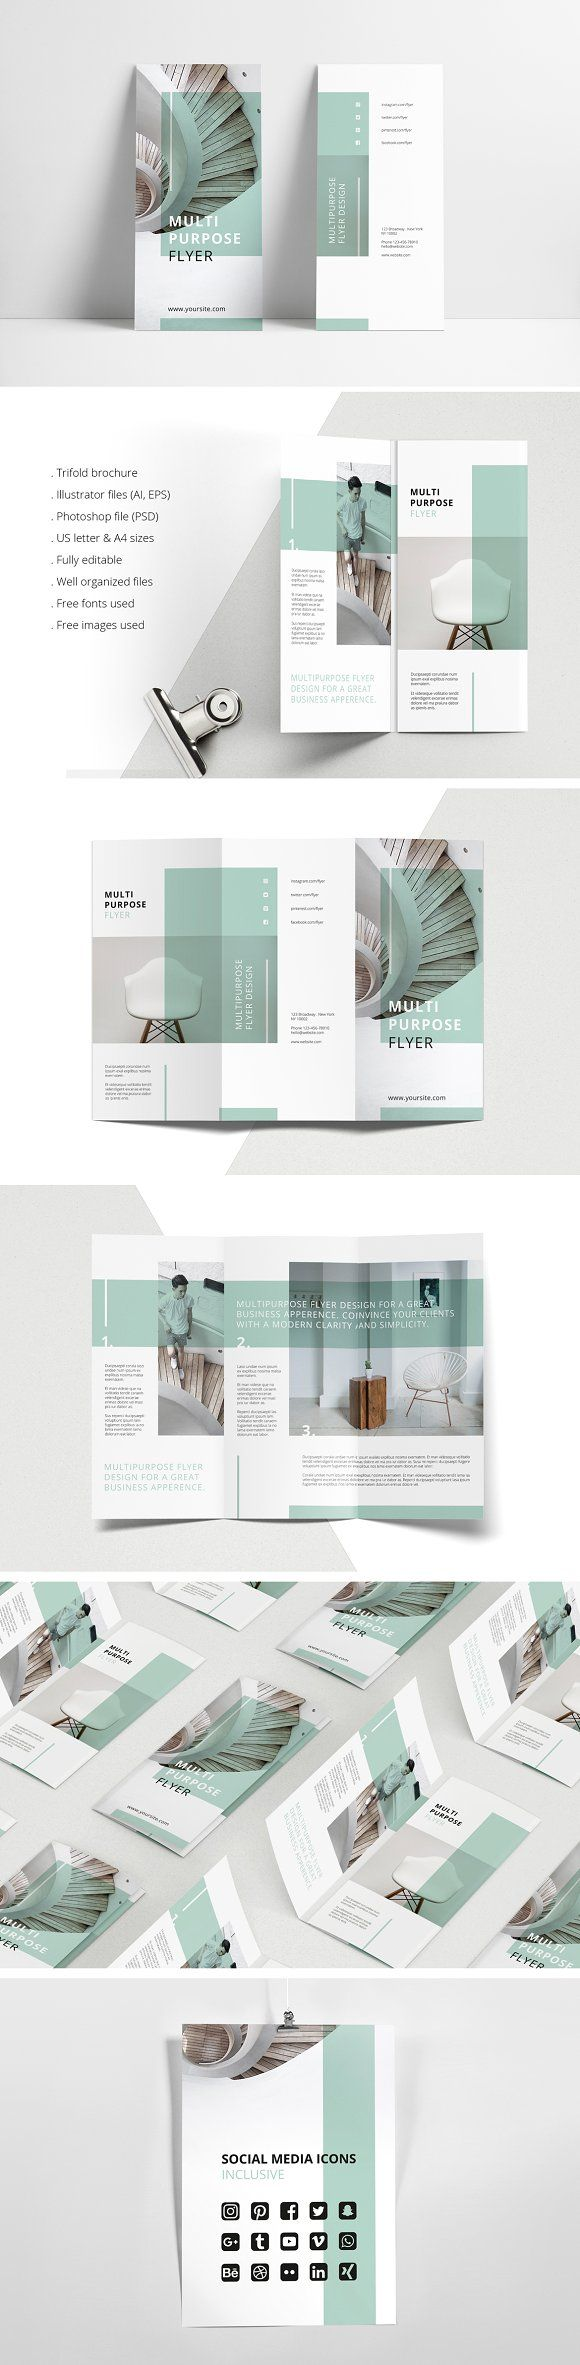 mint multipurpose trifold brochure by agatacreate on creativemarket